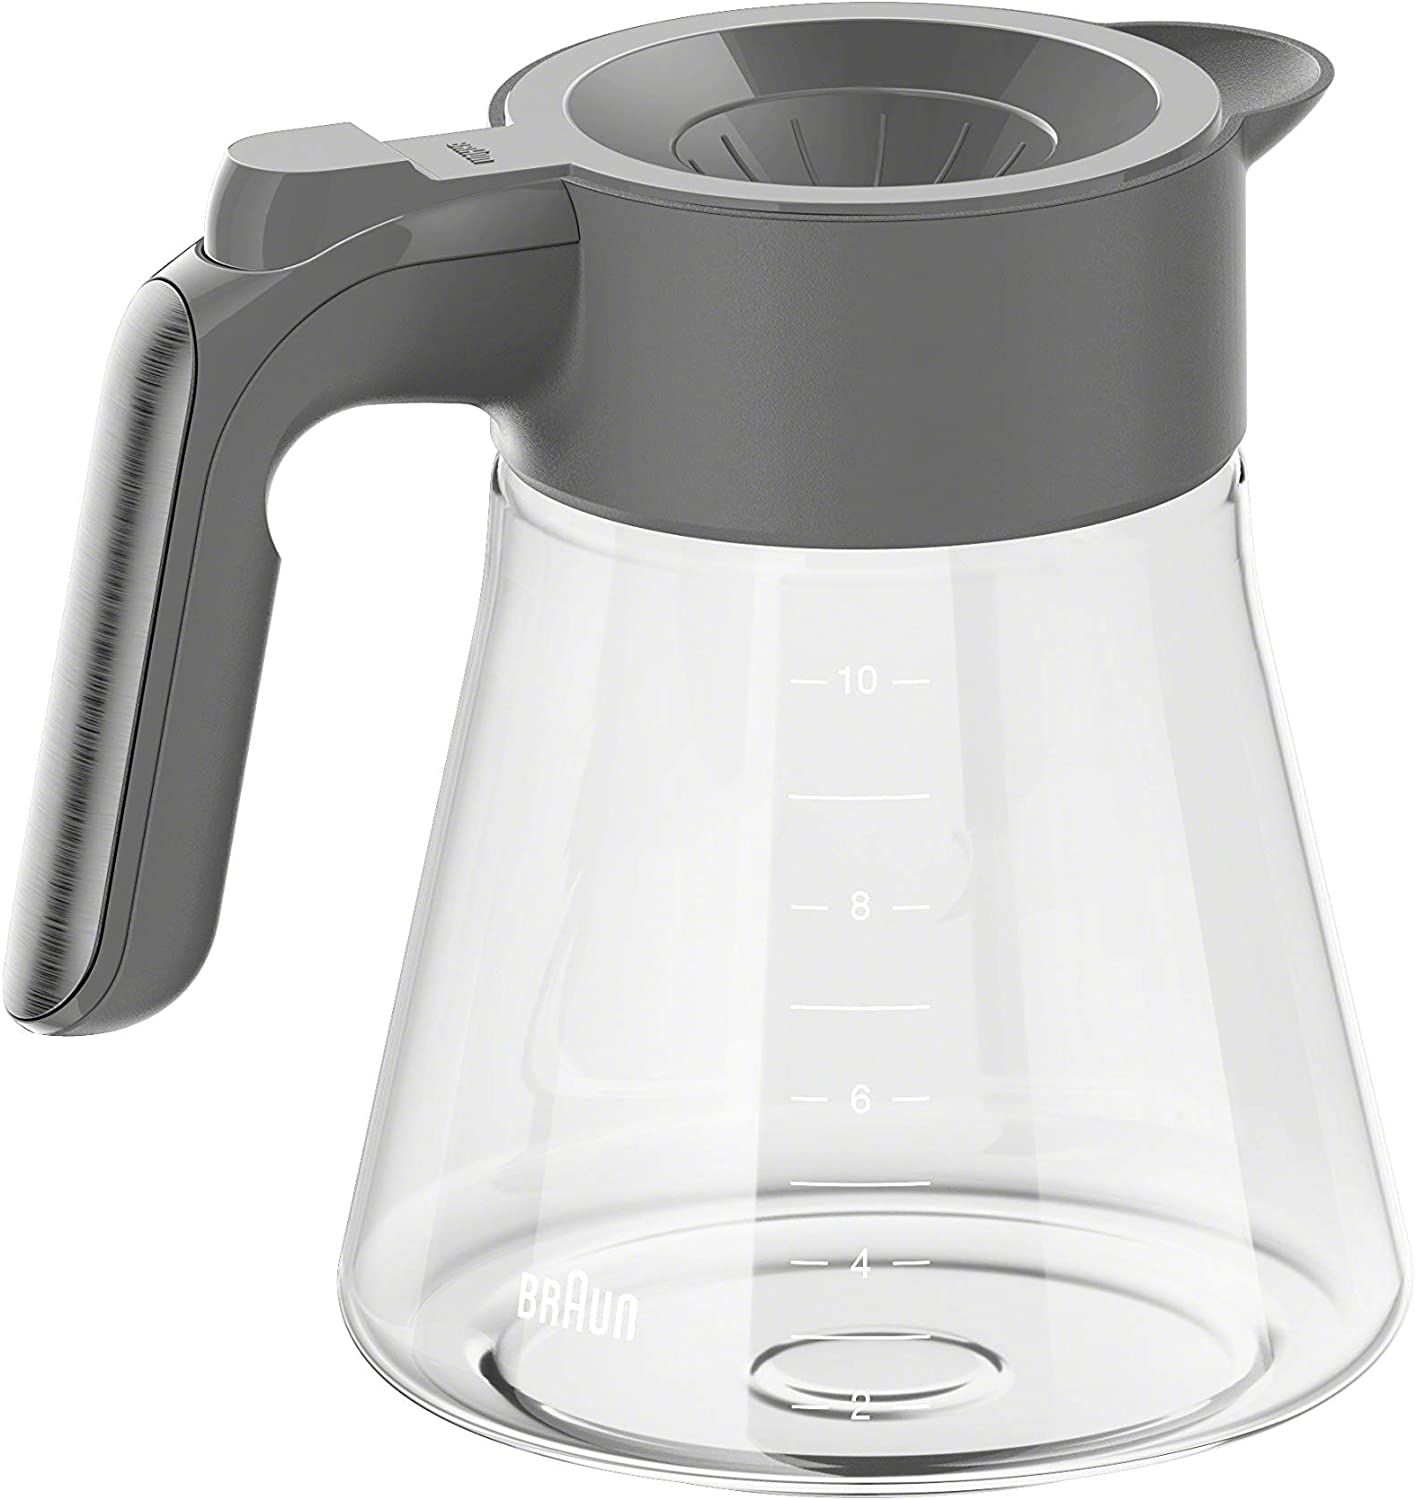 Braun BRSC009 MultiServe Coffee Machine 10 cup Replacement Carafe, Grey